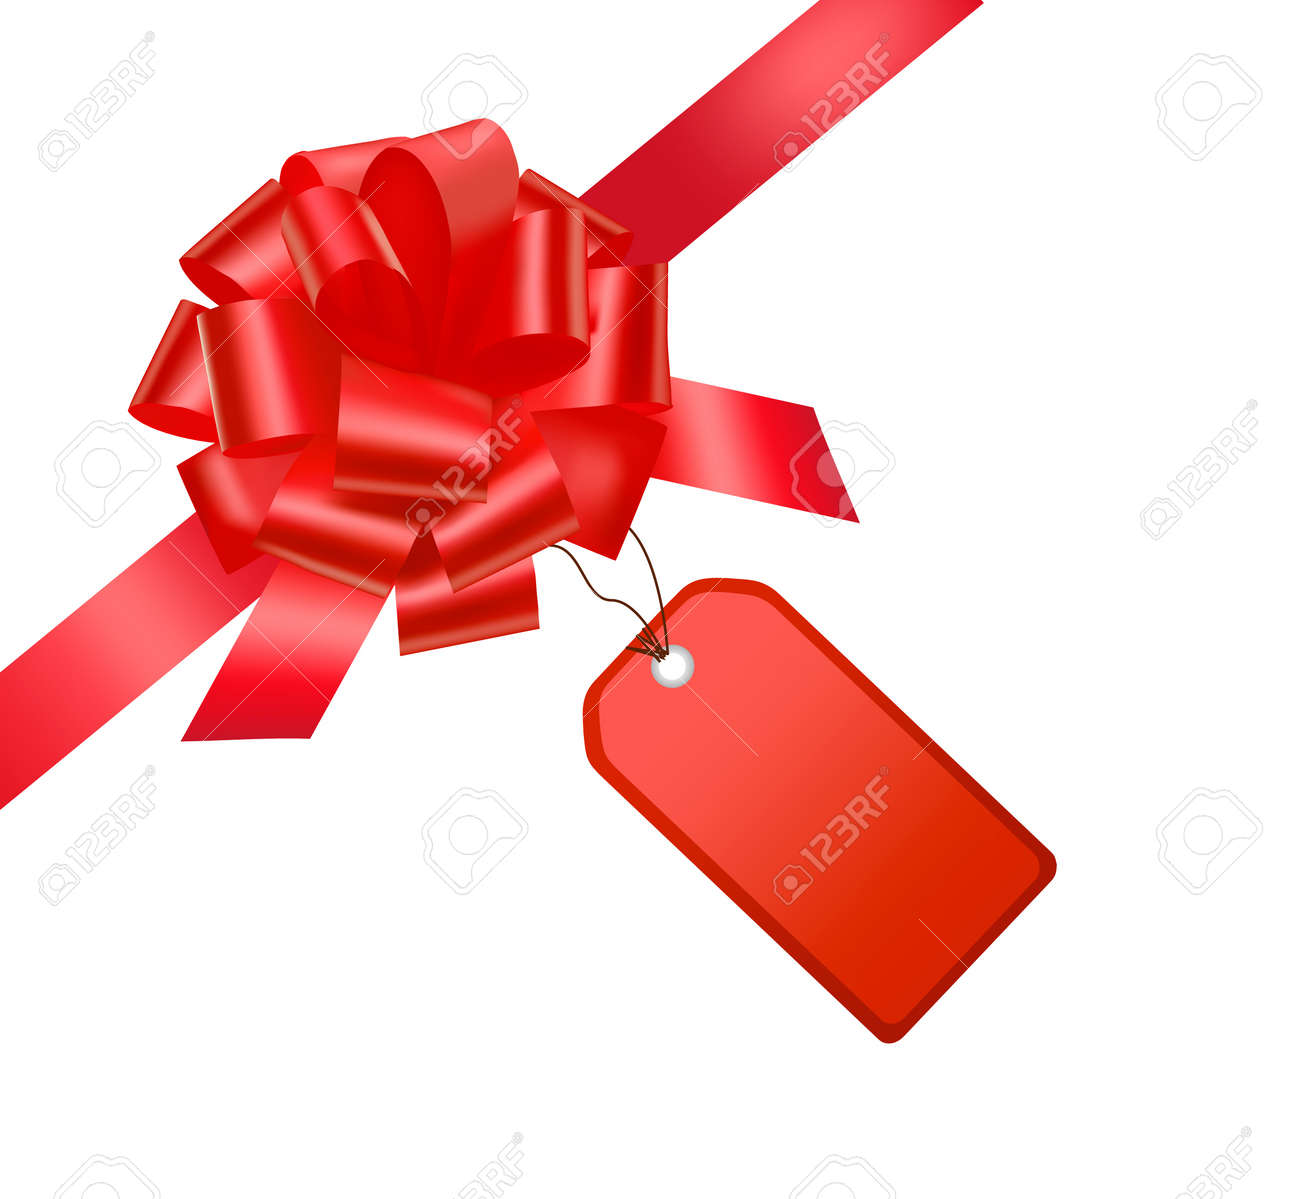 Gift red ribbon and bow with card gift red ribbon and bow with card 9934321 negle Choice Image